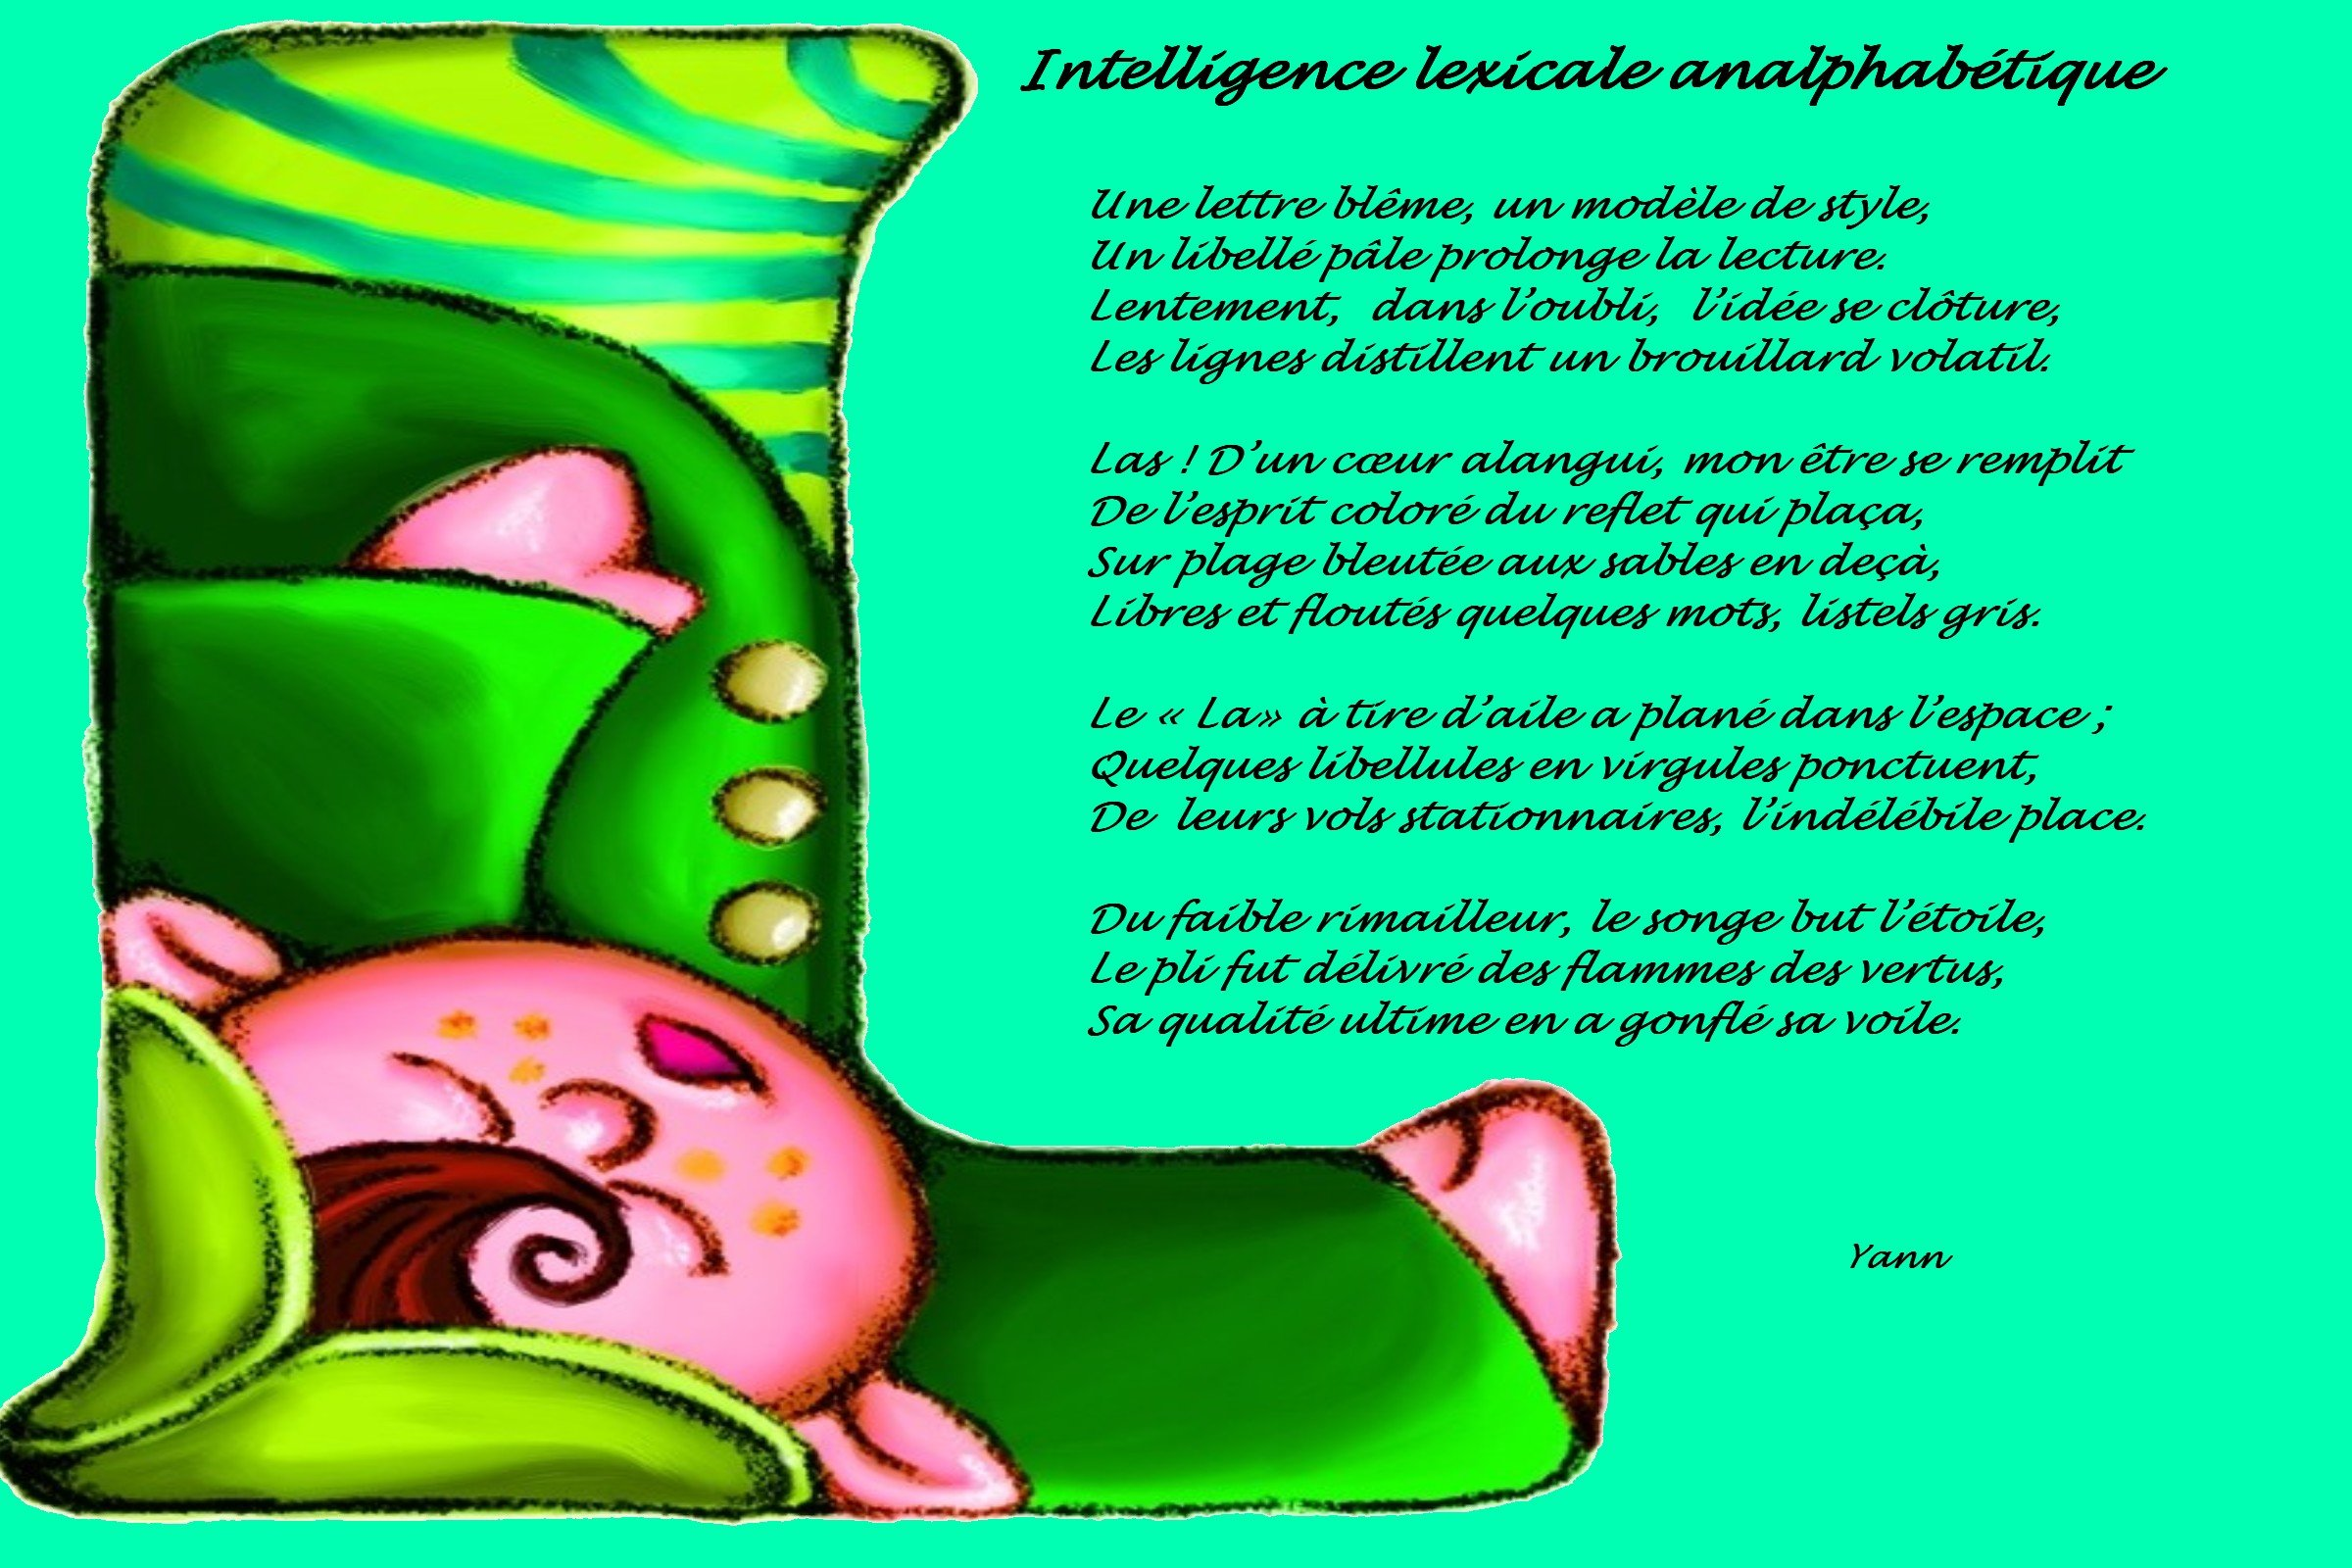 Intelligence lexicale analphabétique (Photopoème)